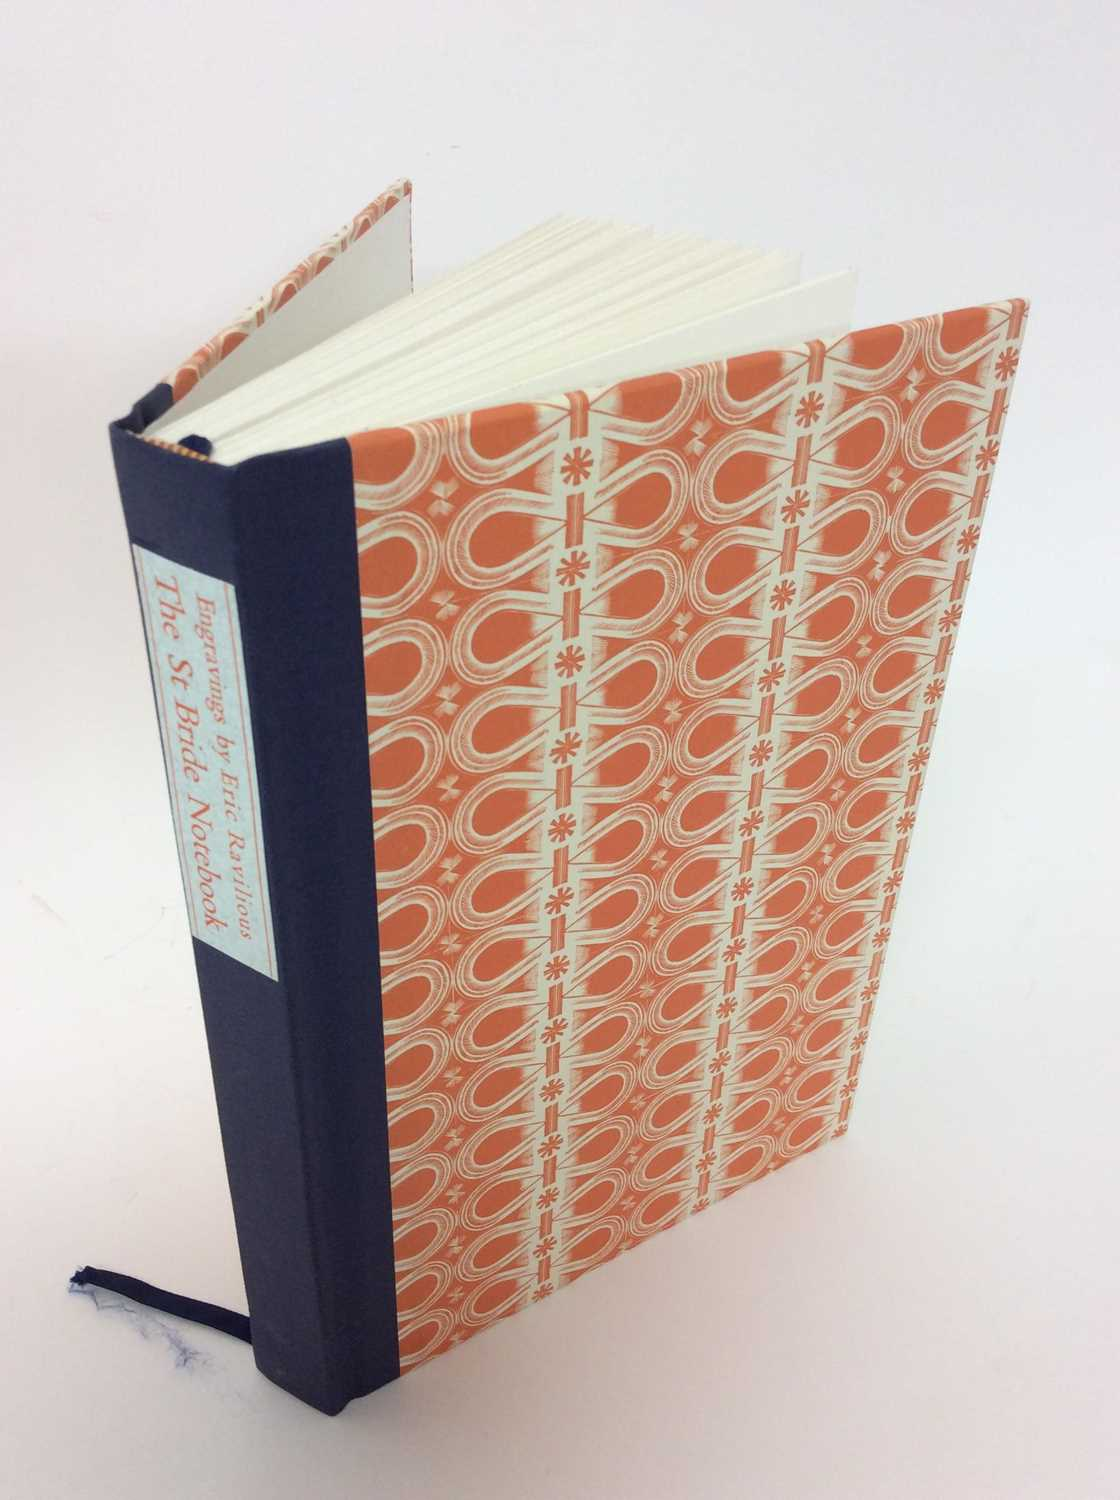 Lot 70 - Caroline Archer and Robert Harling - The St Bride Notebook, with  wood engravings by Eric Ravilious., to celebrate the centenary of his birth, Incline Press 2003